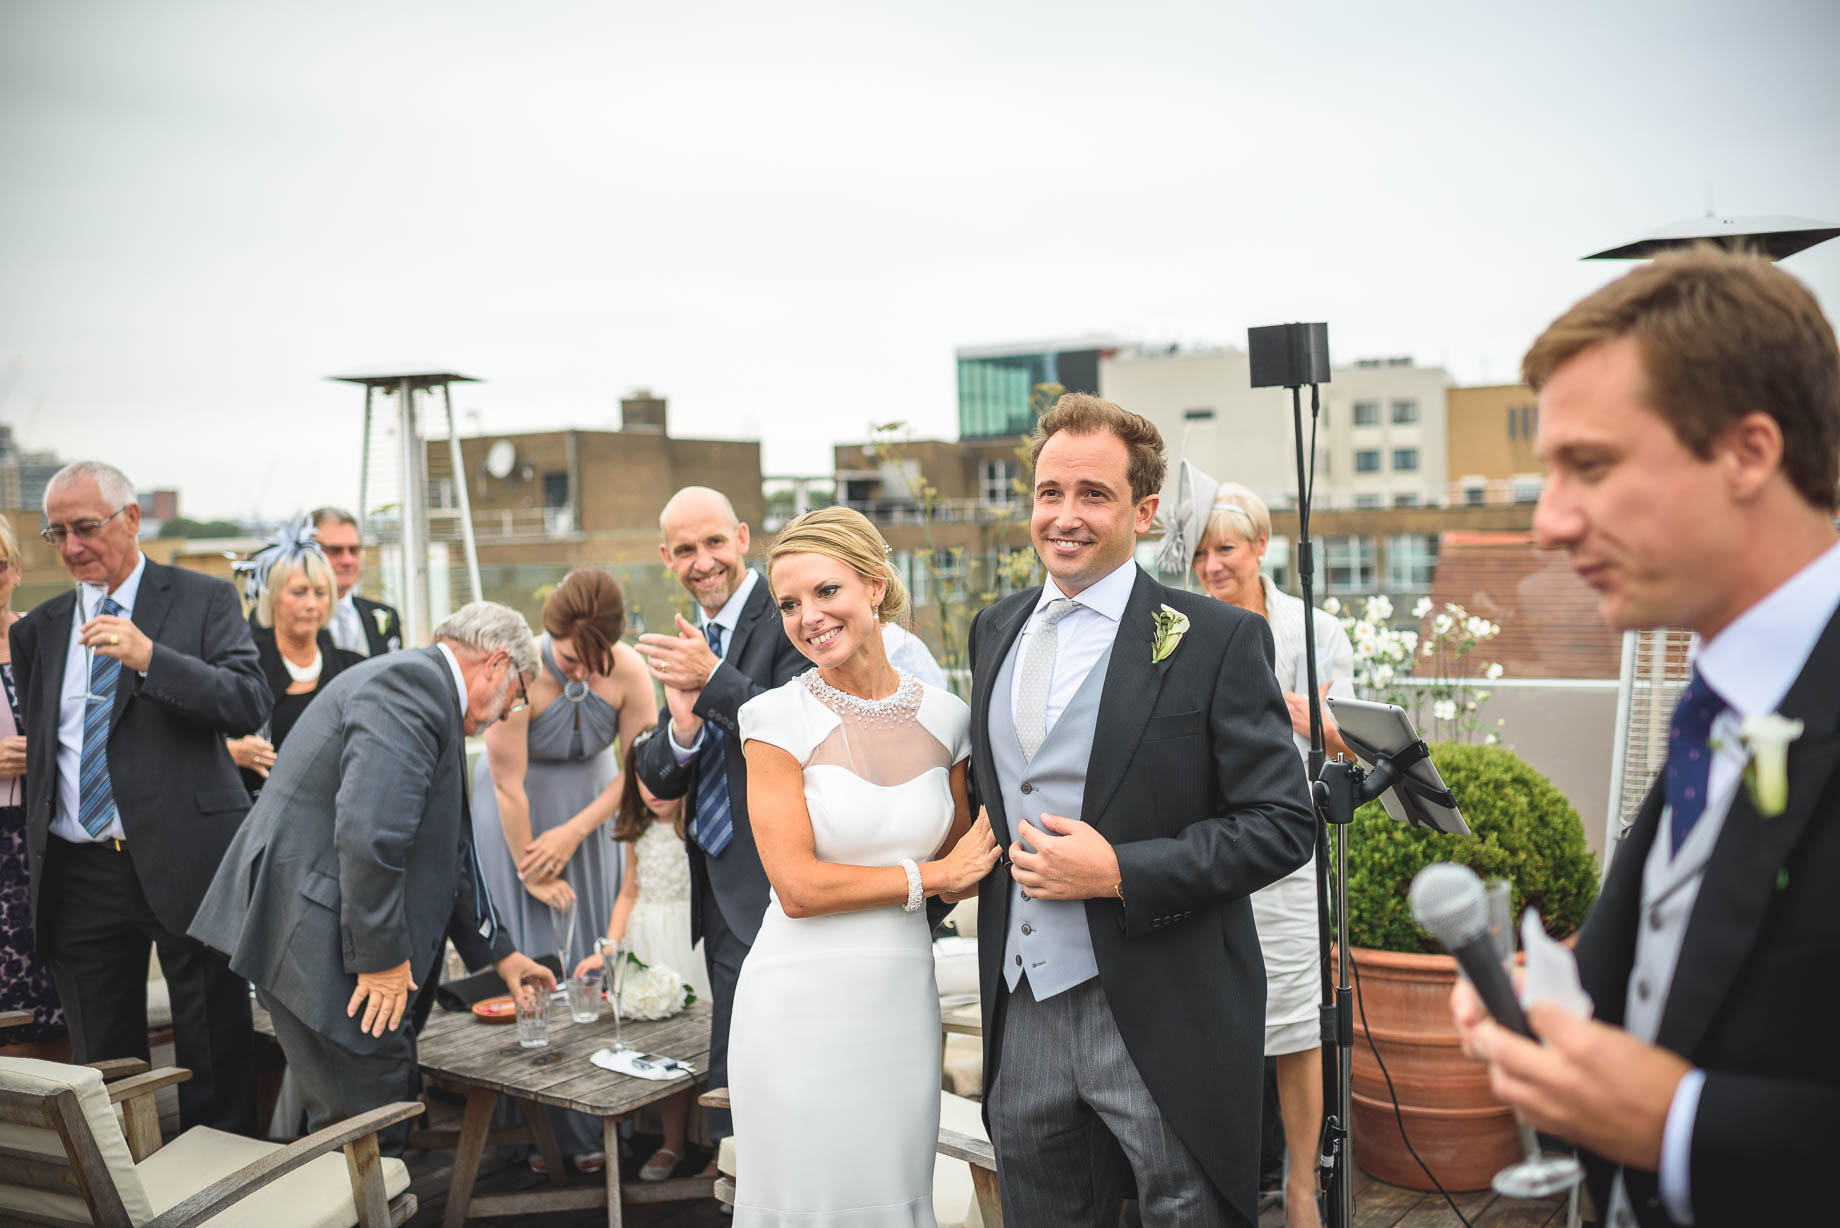 Shoreditch wedding photography - Guy Collier - Kat and Henry (185 of 200)